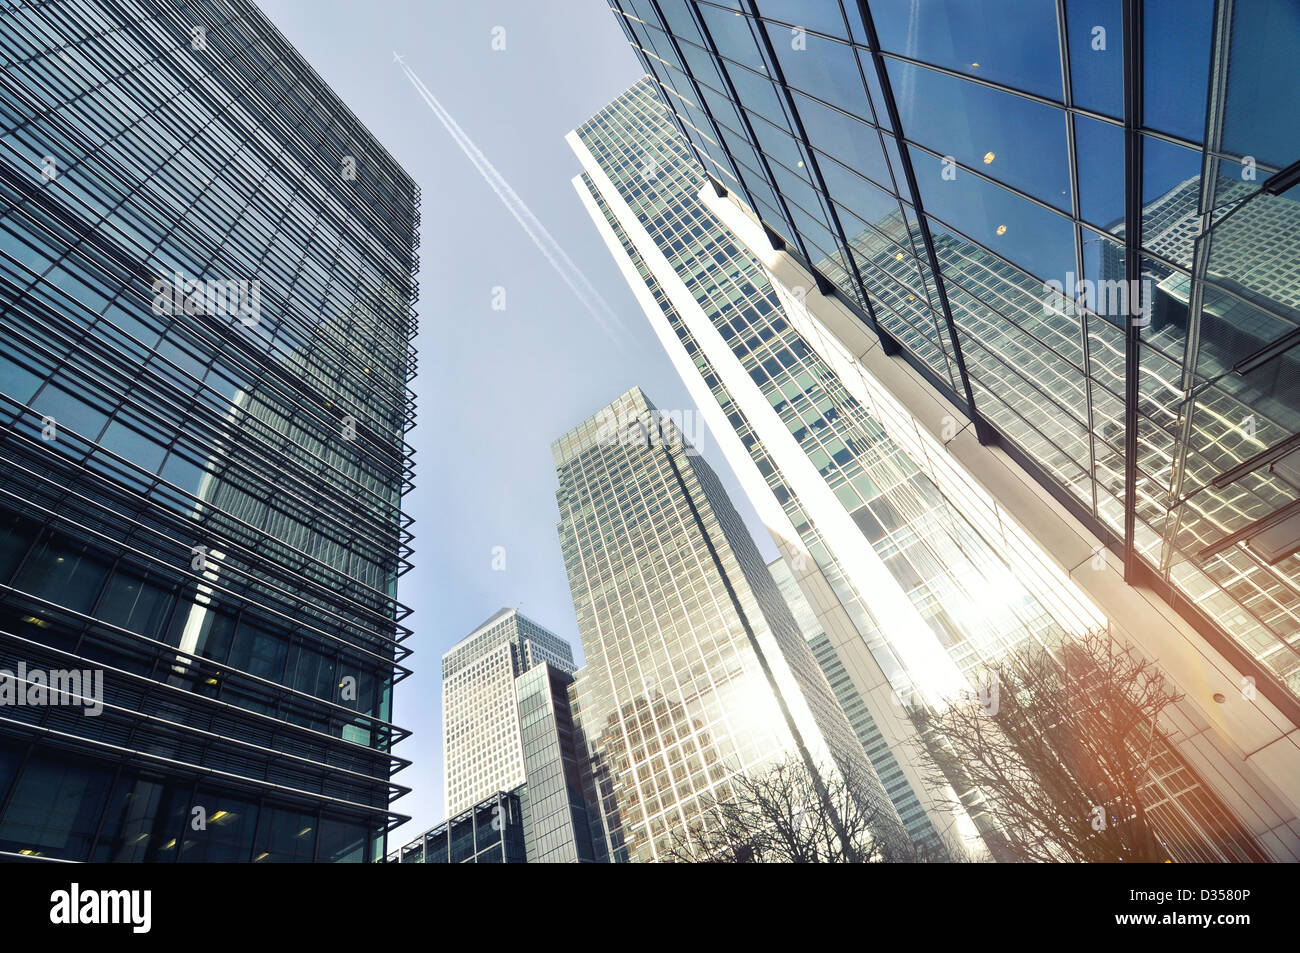 panorama of skyline buildings in Canary Wharf, Docklands, London - Stock Image